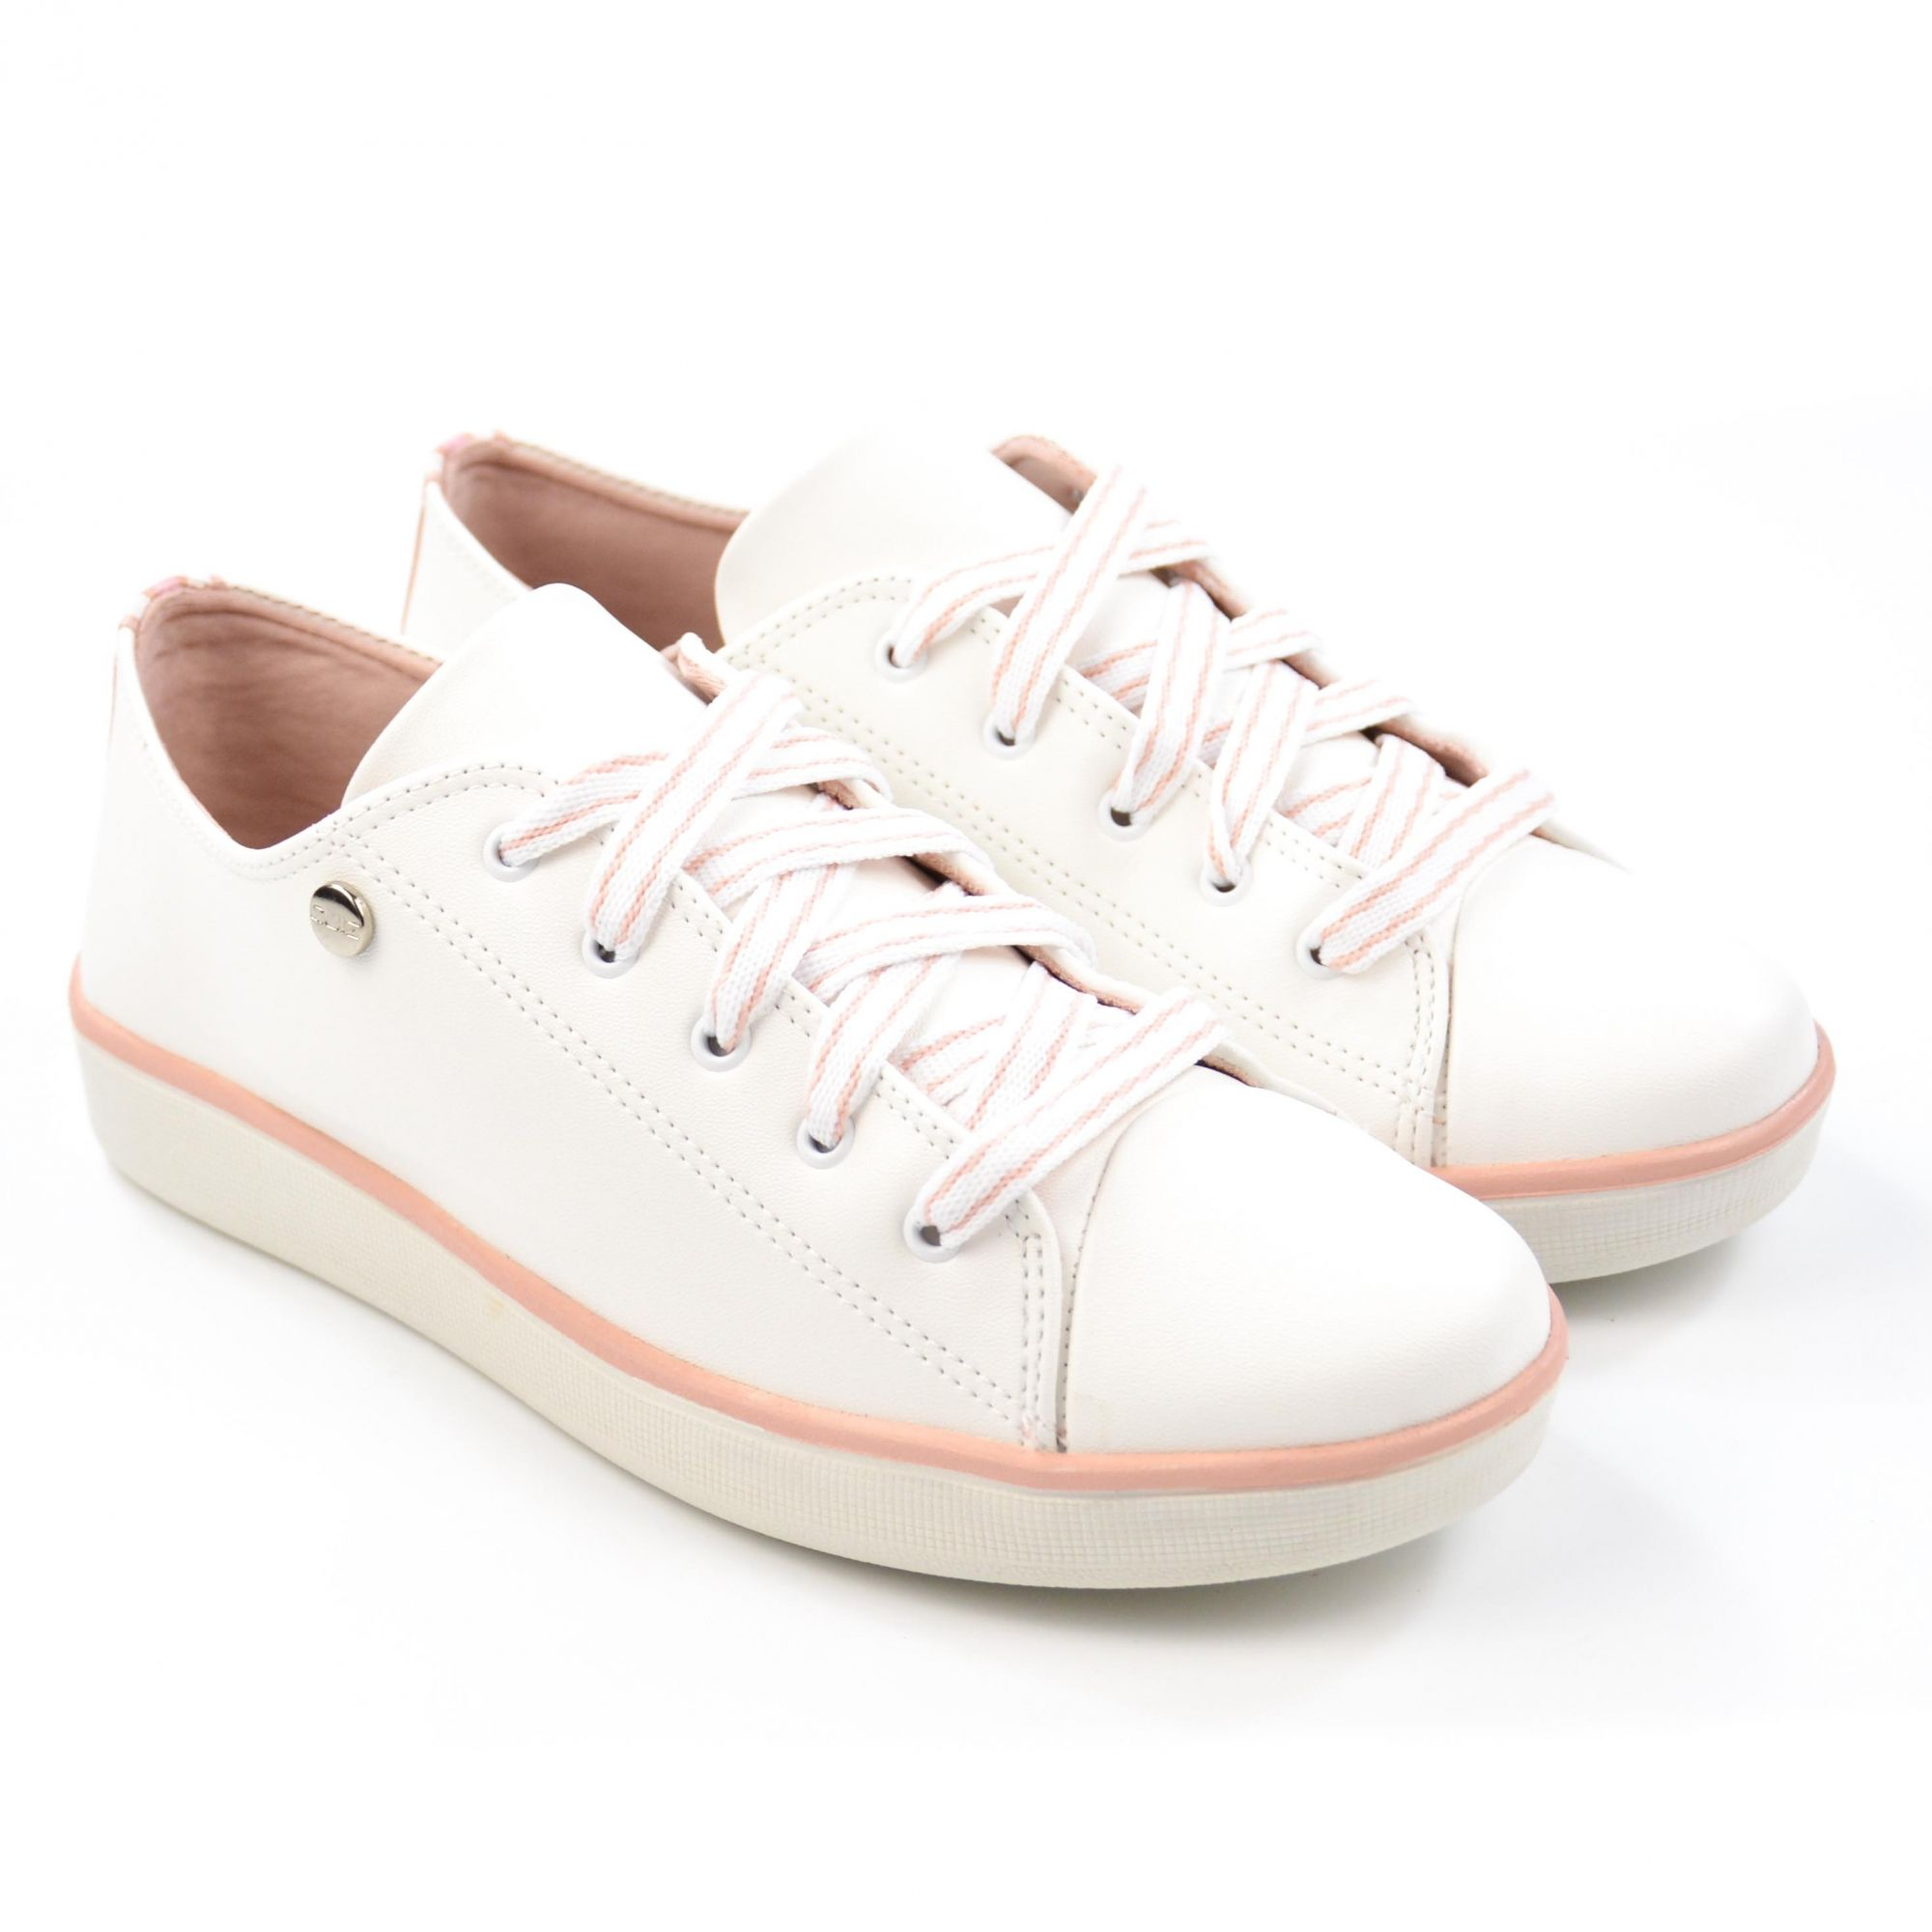 TENIS CASUAL FEM 68-63918 BRANCO FILETE ROSA QUIZ 18518